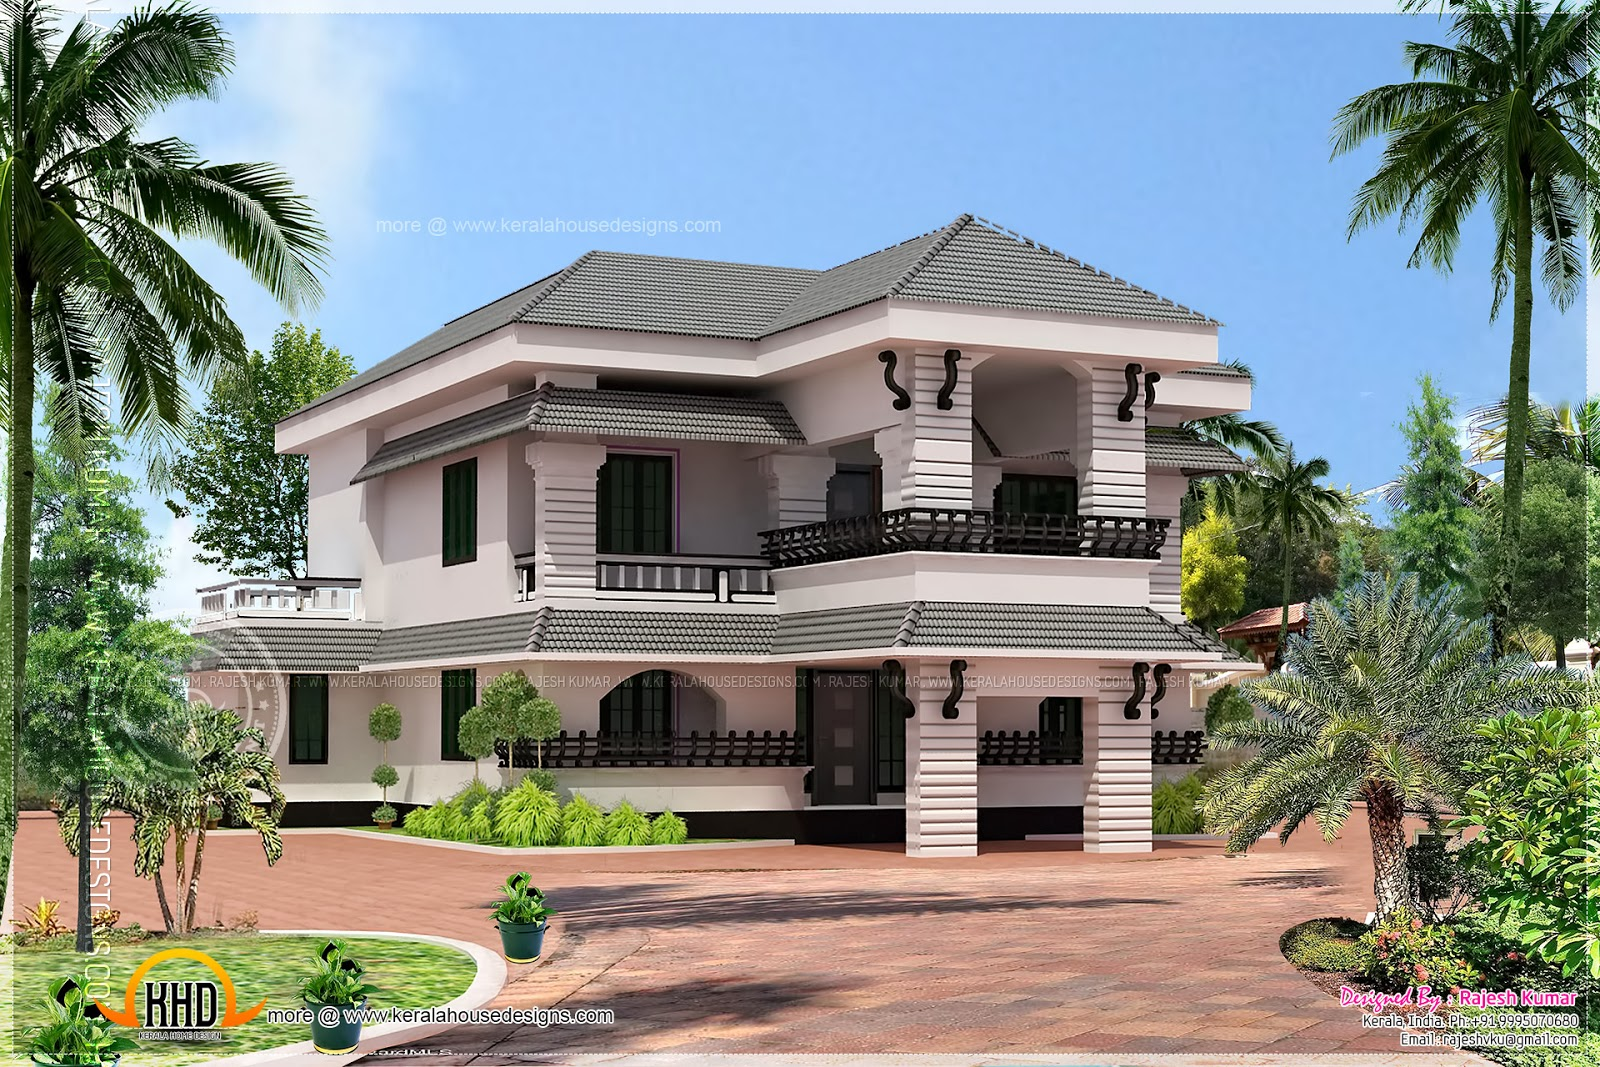 Malabar model home design kerala home design and floor plans for House in design